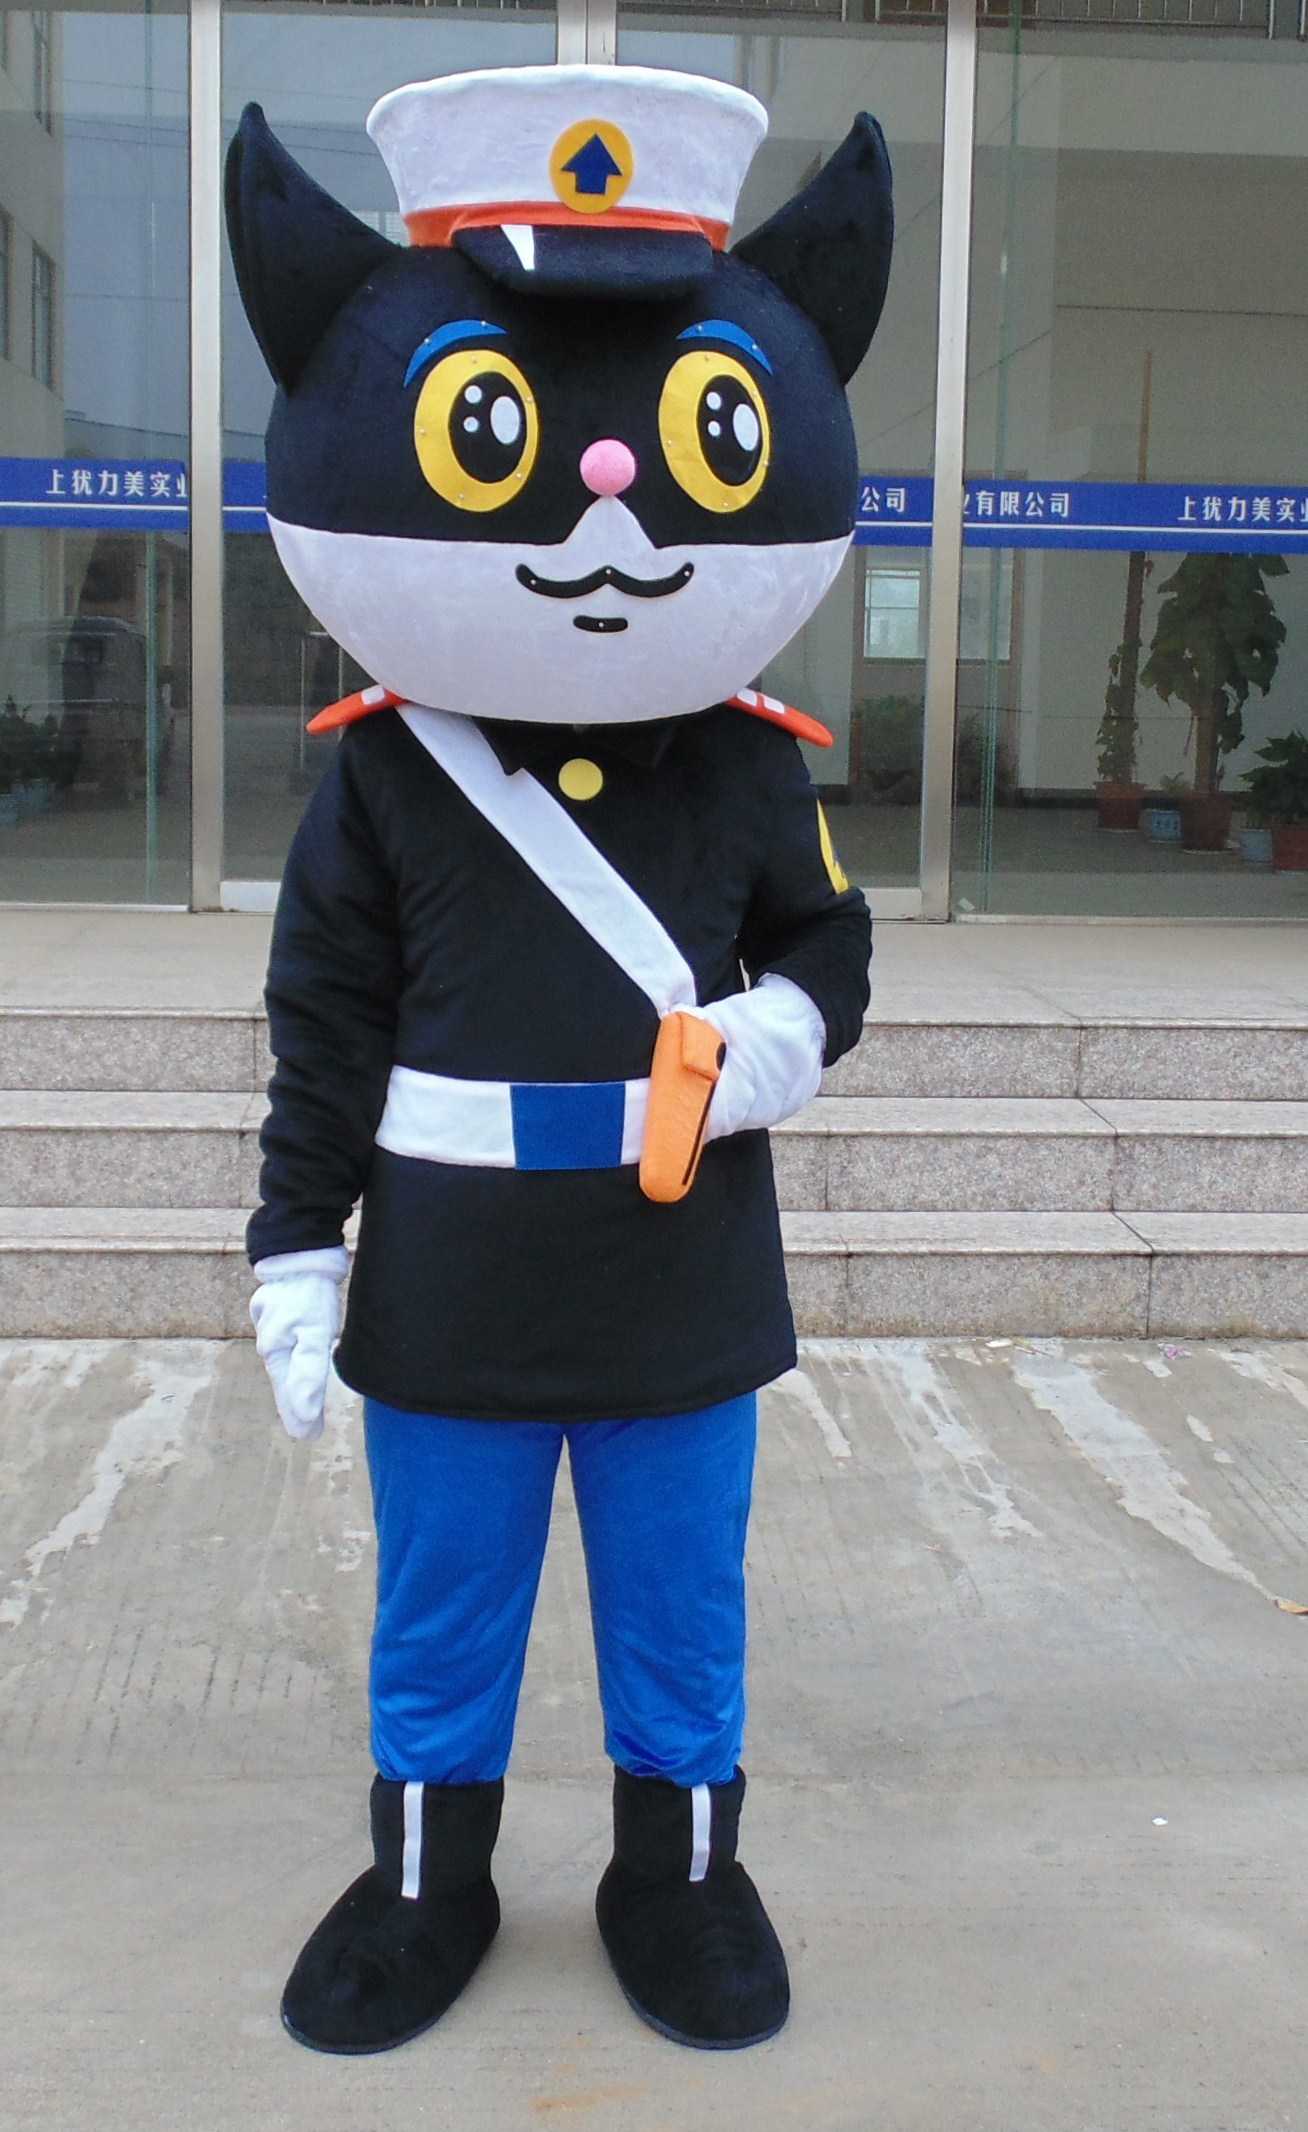 Helmet Black Cat Sheriff Mascot Costumes Unisex  Cartoon Character Cosply  Fancy Dress Costumes Free Shipping